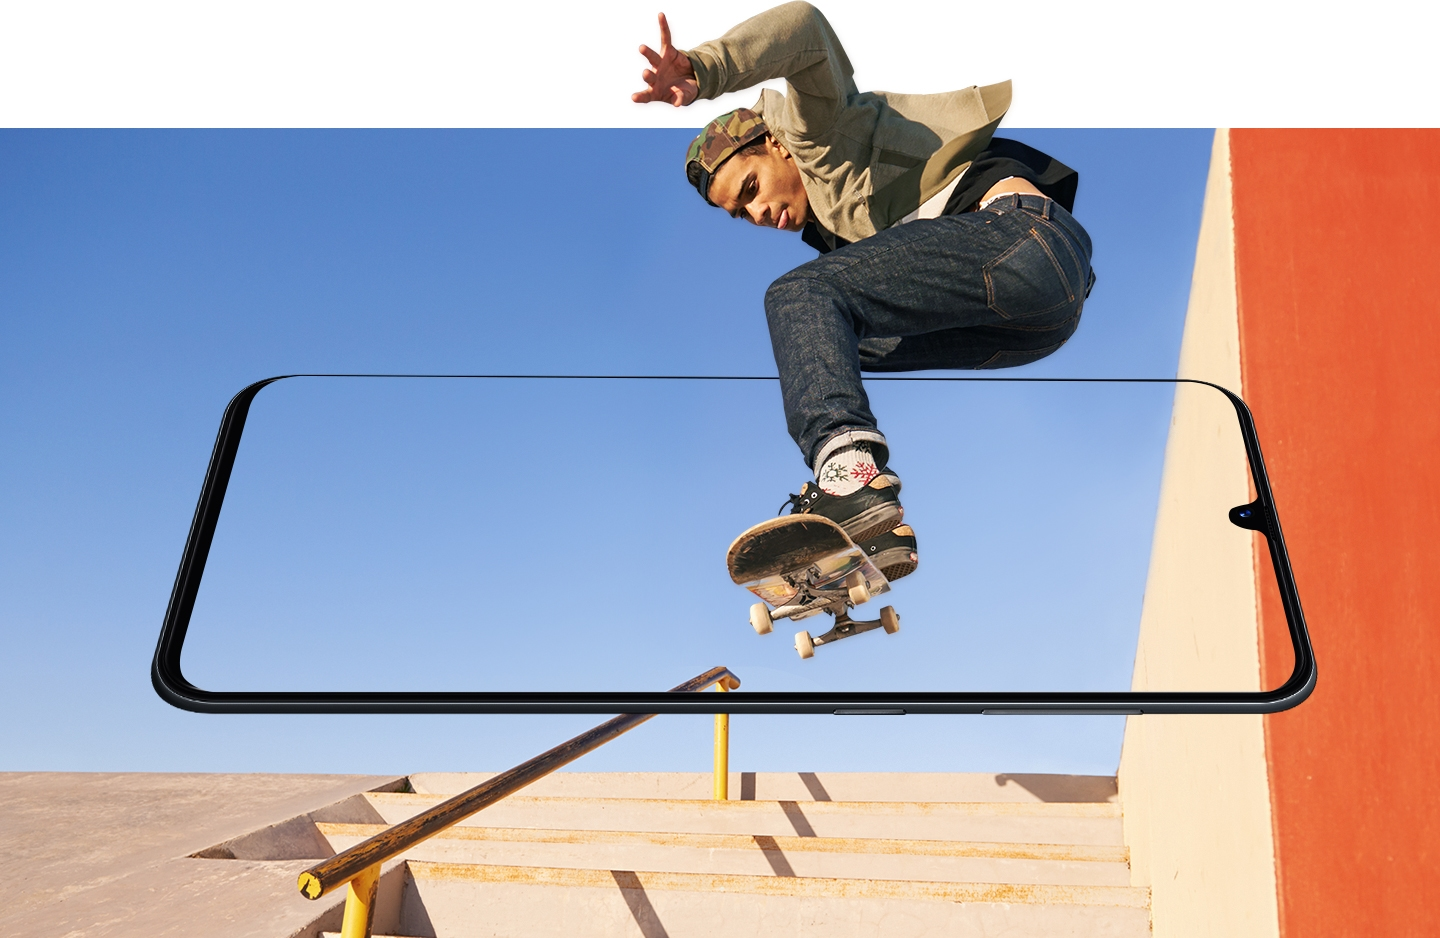 Simulated image of Galaxy A tilted forward and blending in with the skatepark background as a skateboarder jumps mid-air to show how the screen brings everything to life.